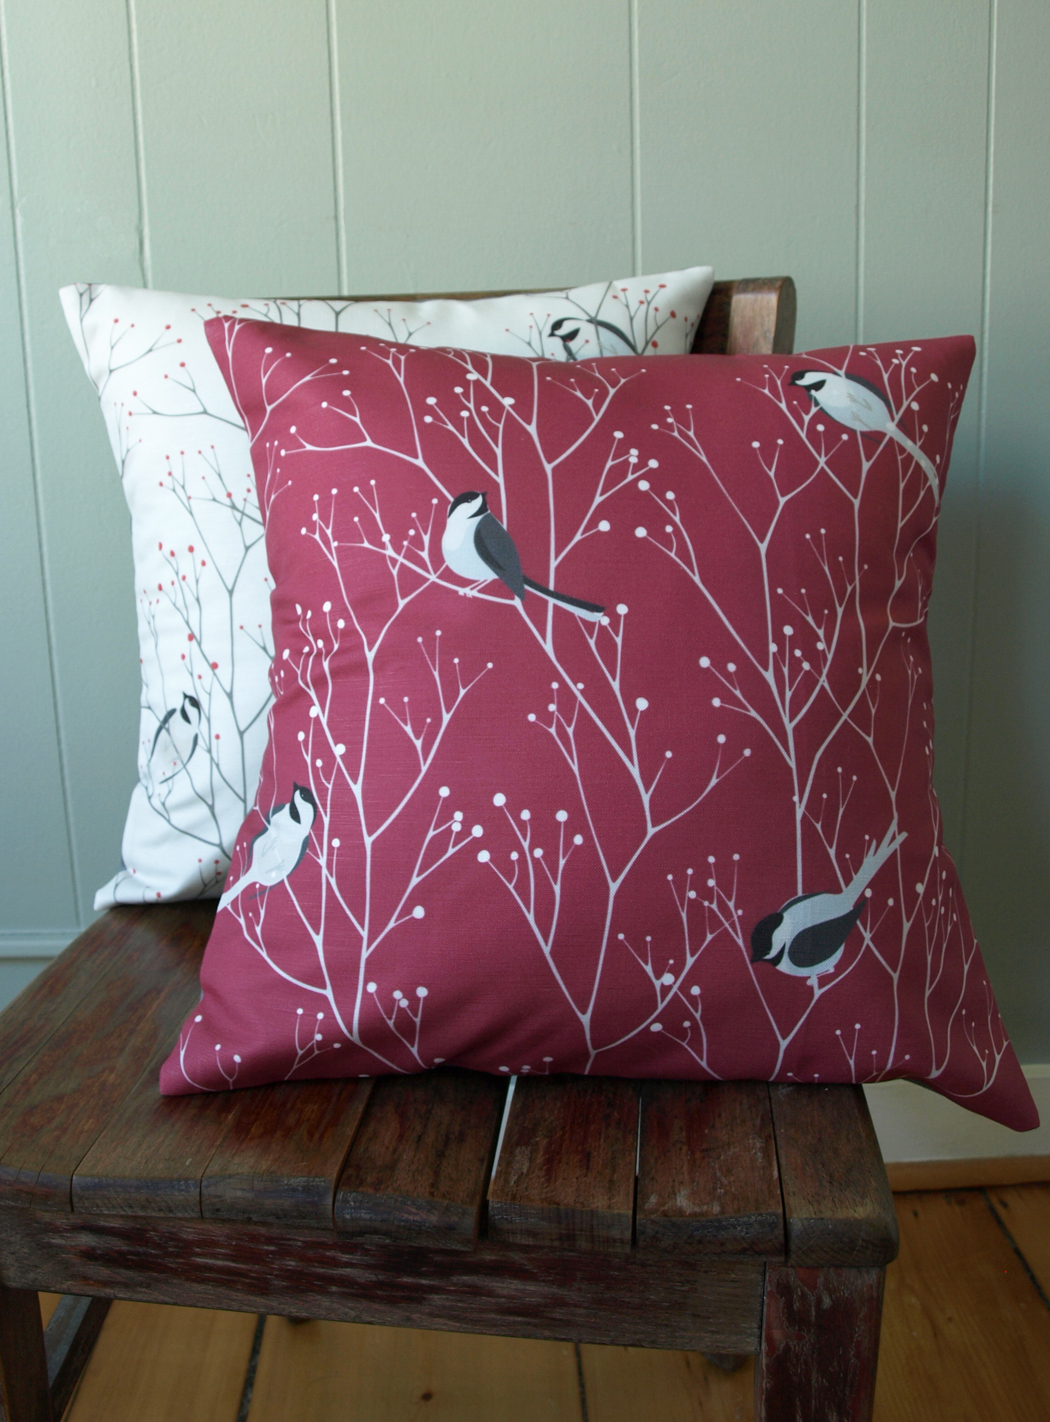 Who knew Mainers loved their state bird so much! (I didn't).    Restocking our chickadees: tea towel fabric arriving any day, and fabric for pillows next week. If you can stand a little longer wait than usual, we are up and taking orders again!